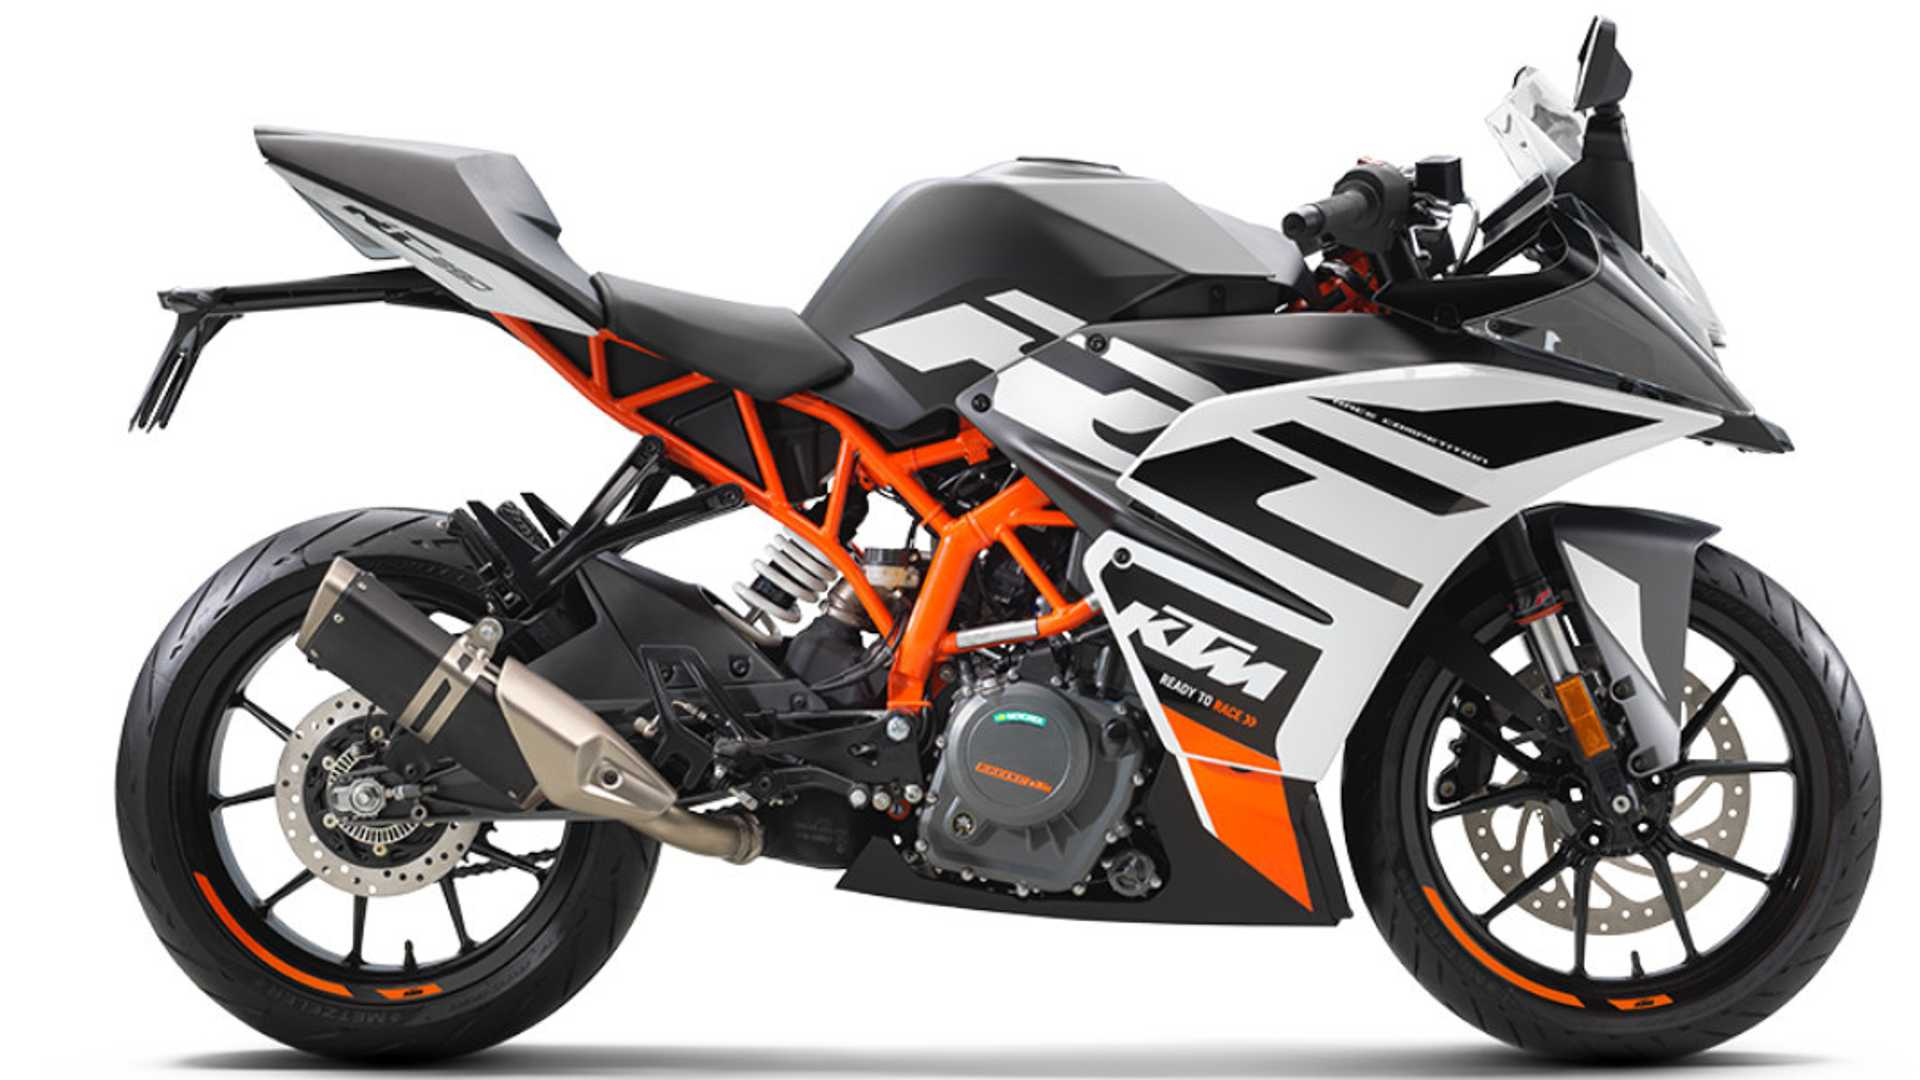 Leaked Photos Show A More Mature KTM RC 390